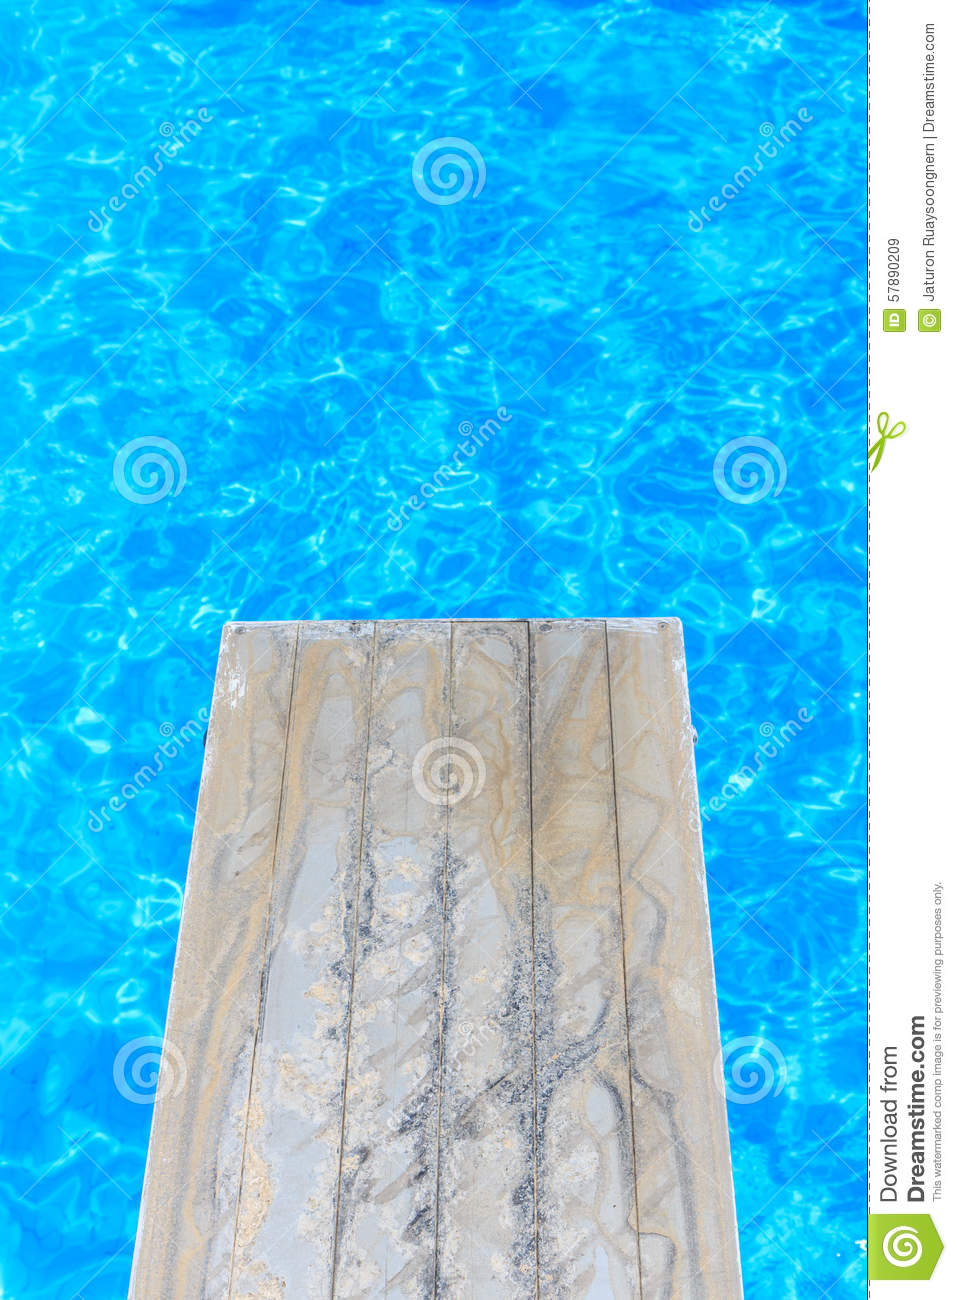 Swimming Pool With Old Wooden Diving Board Stock Photo Image 57890209